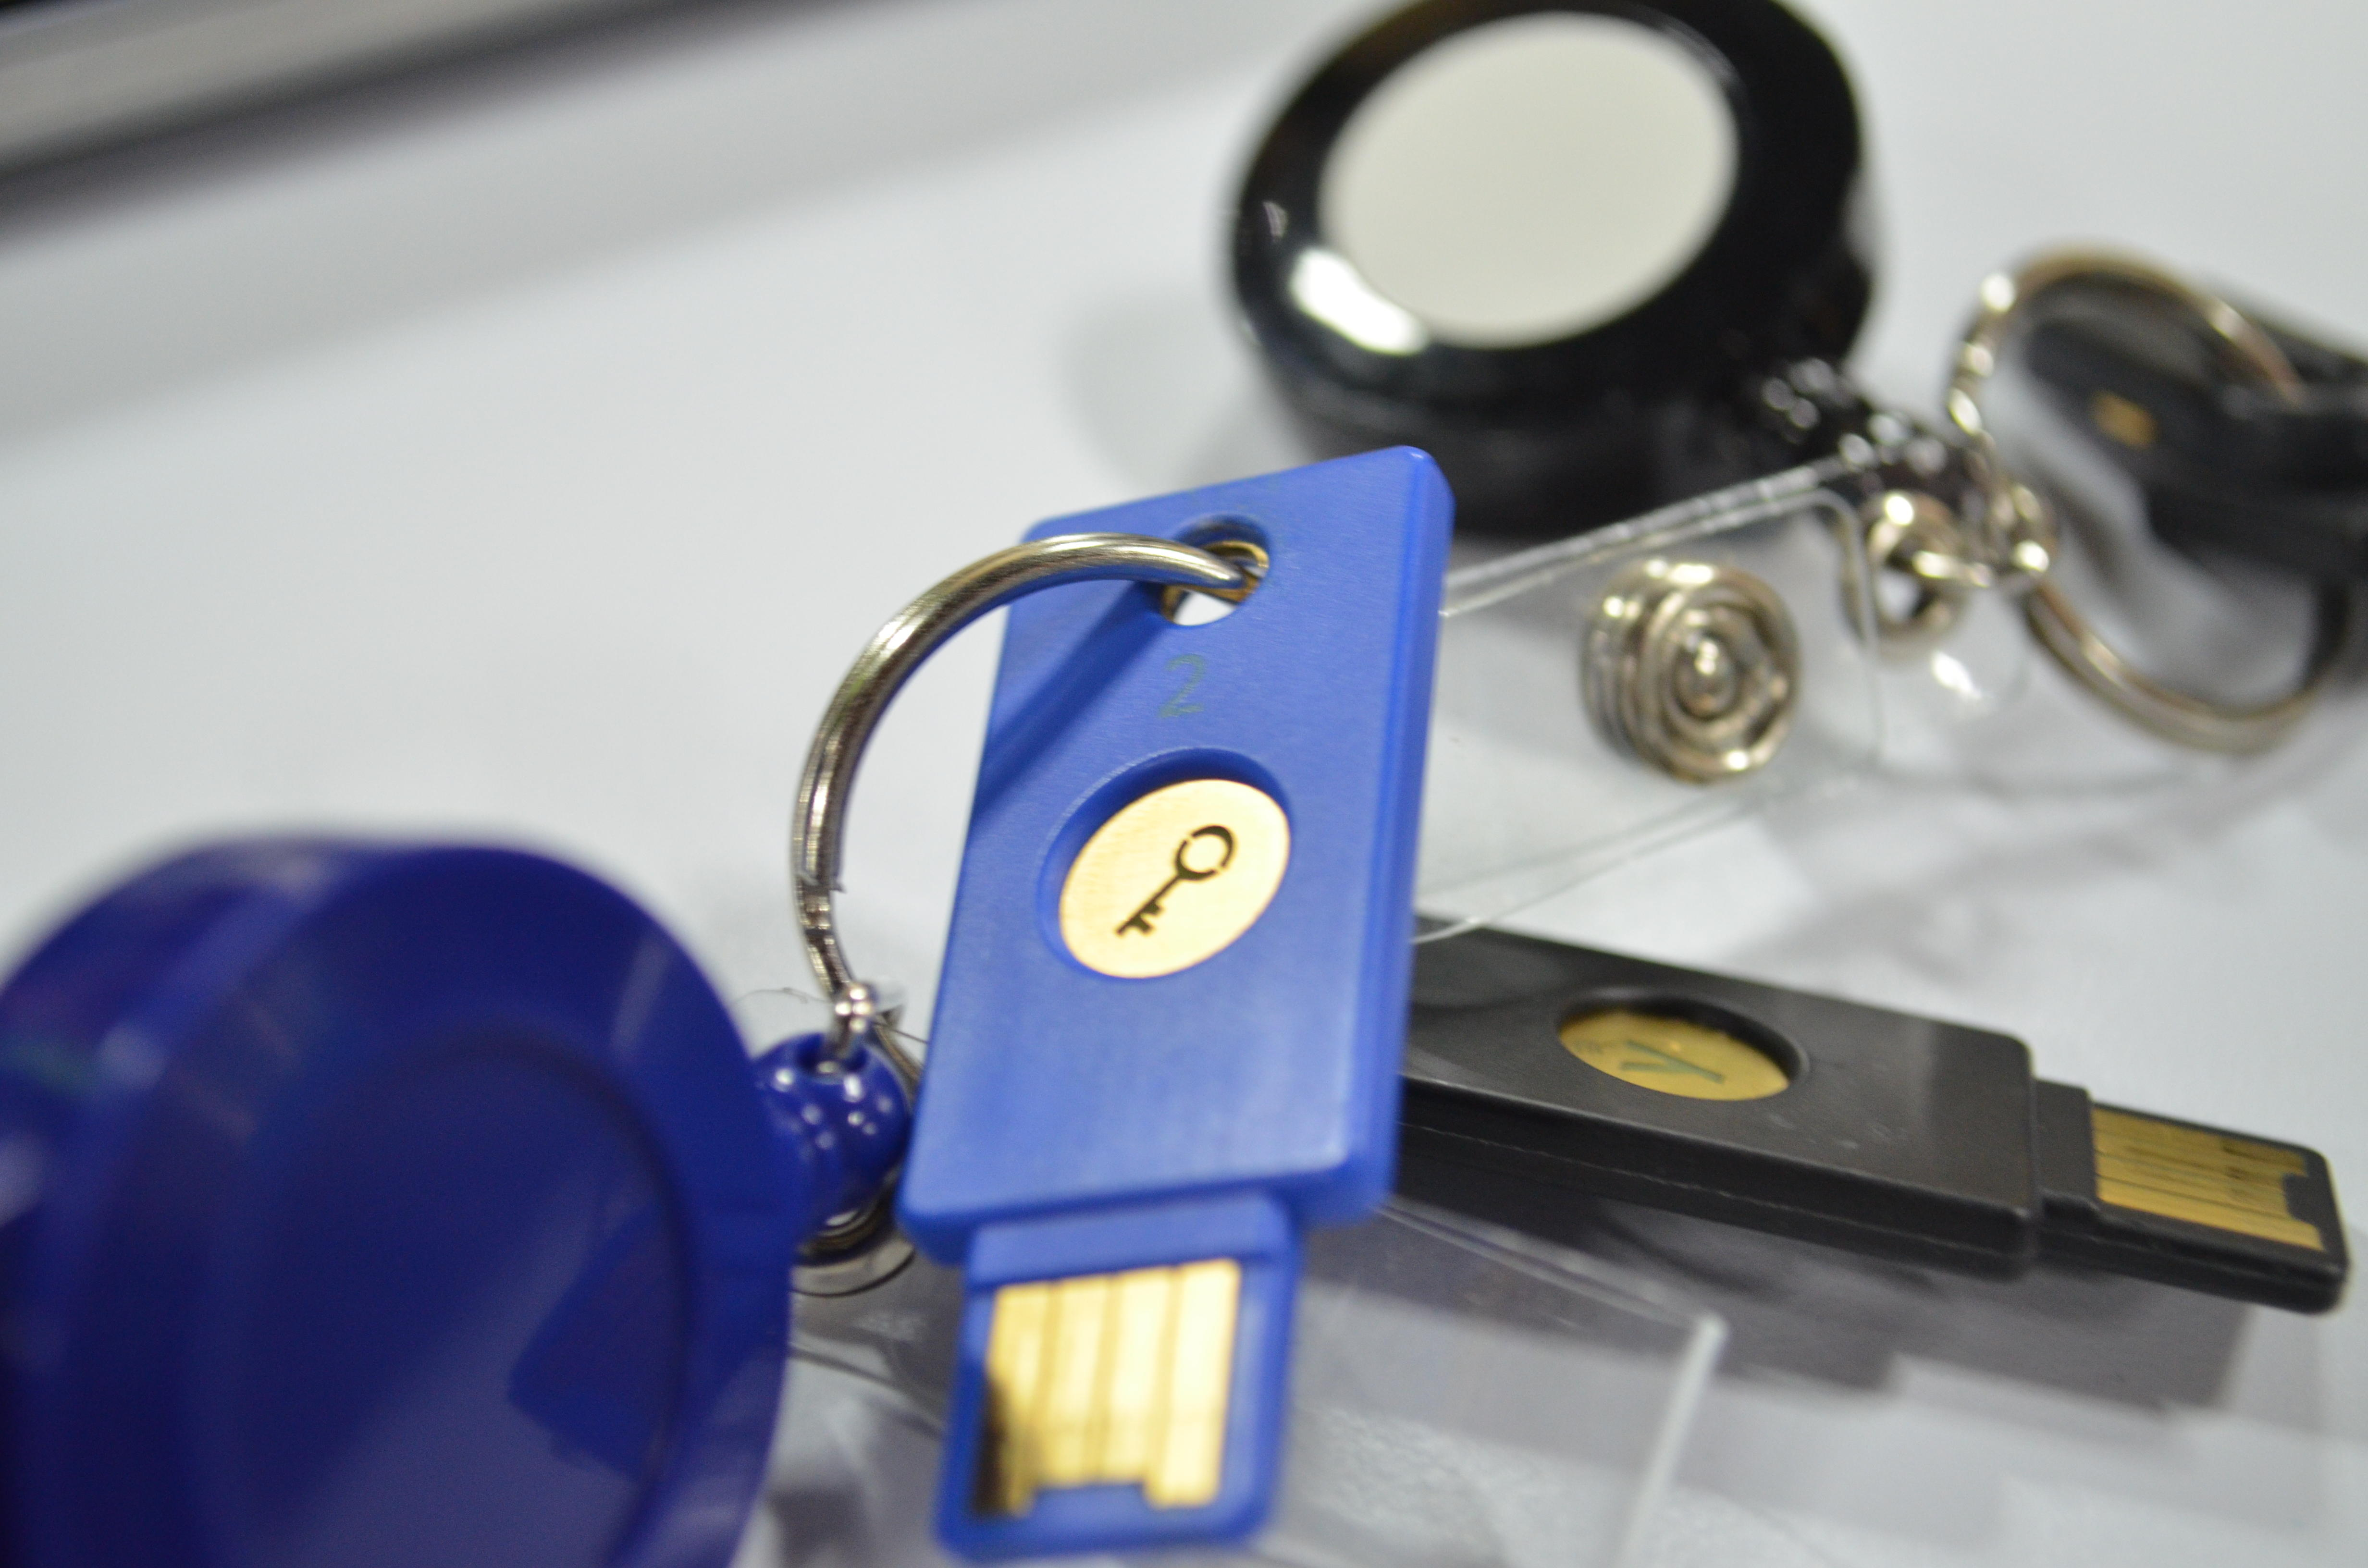 Security keys that provide two-factor authentication are an important tool for keeping accounts secure. But most people aren't using them.